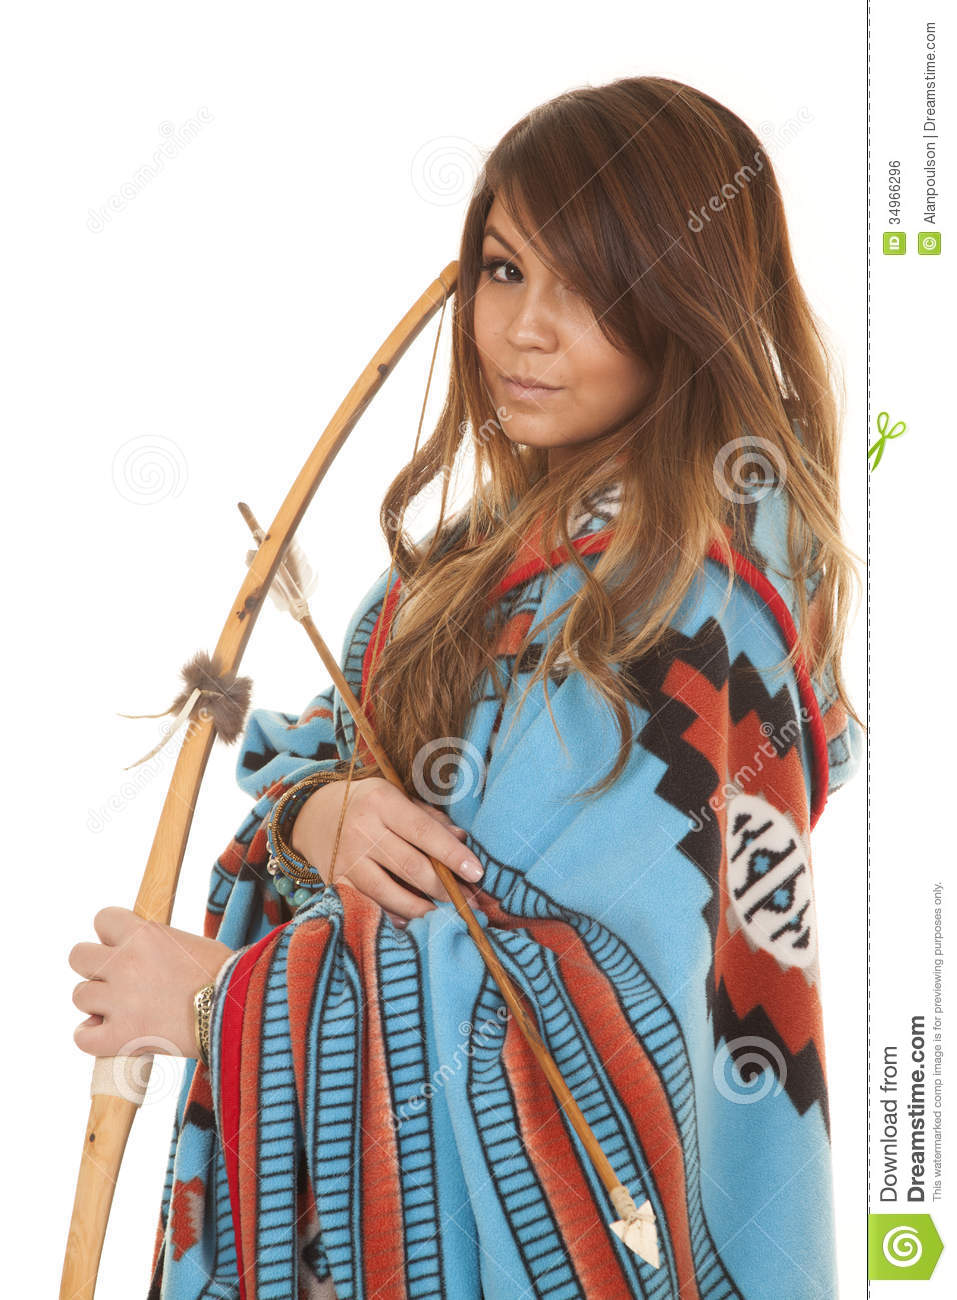 native american woman bow blanket close royalty free stock image